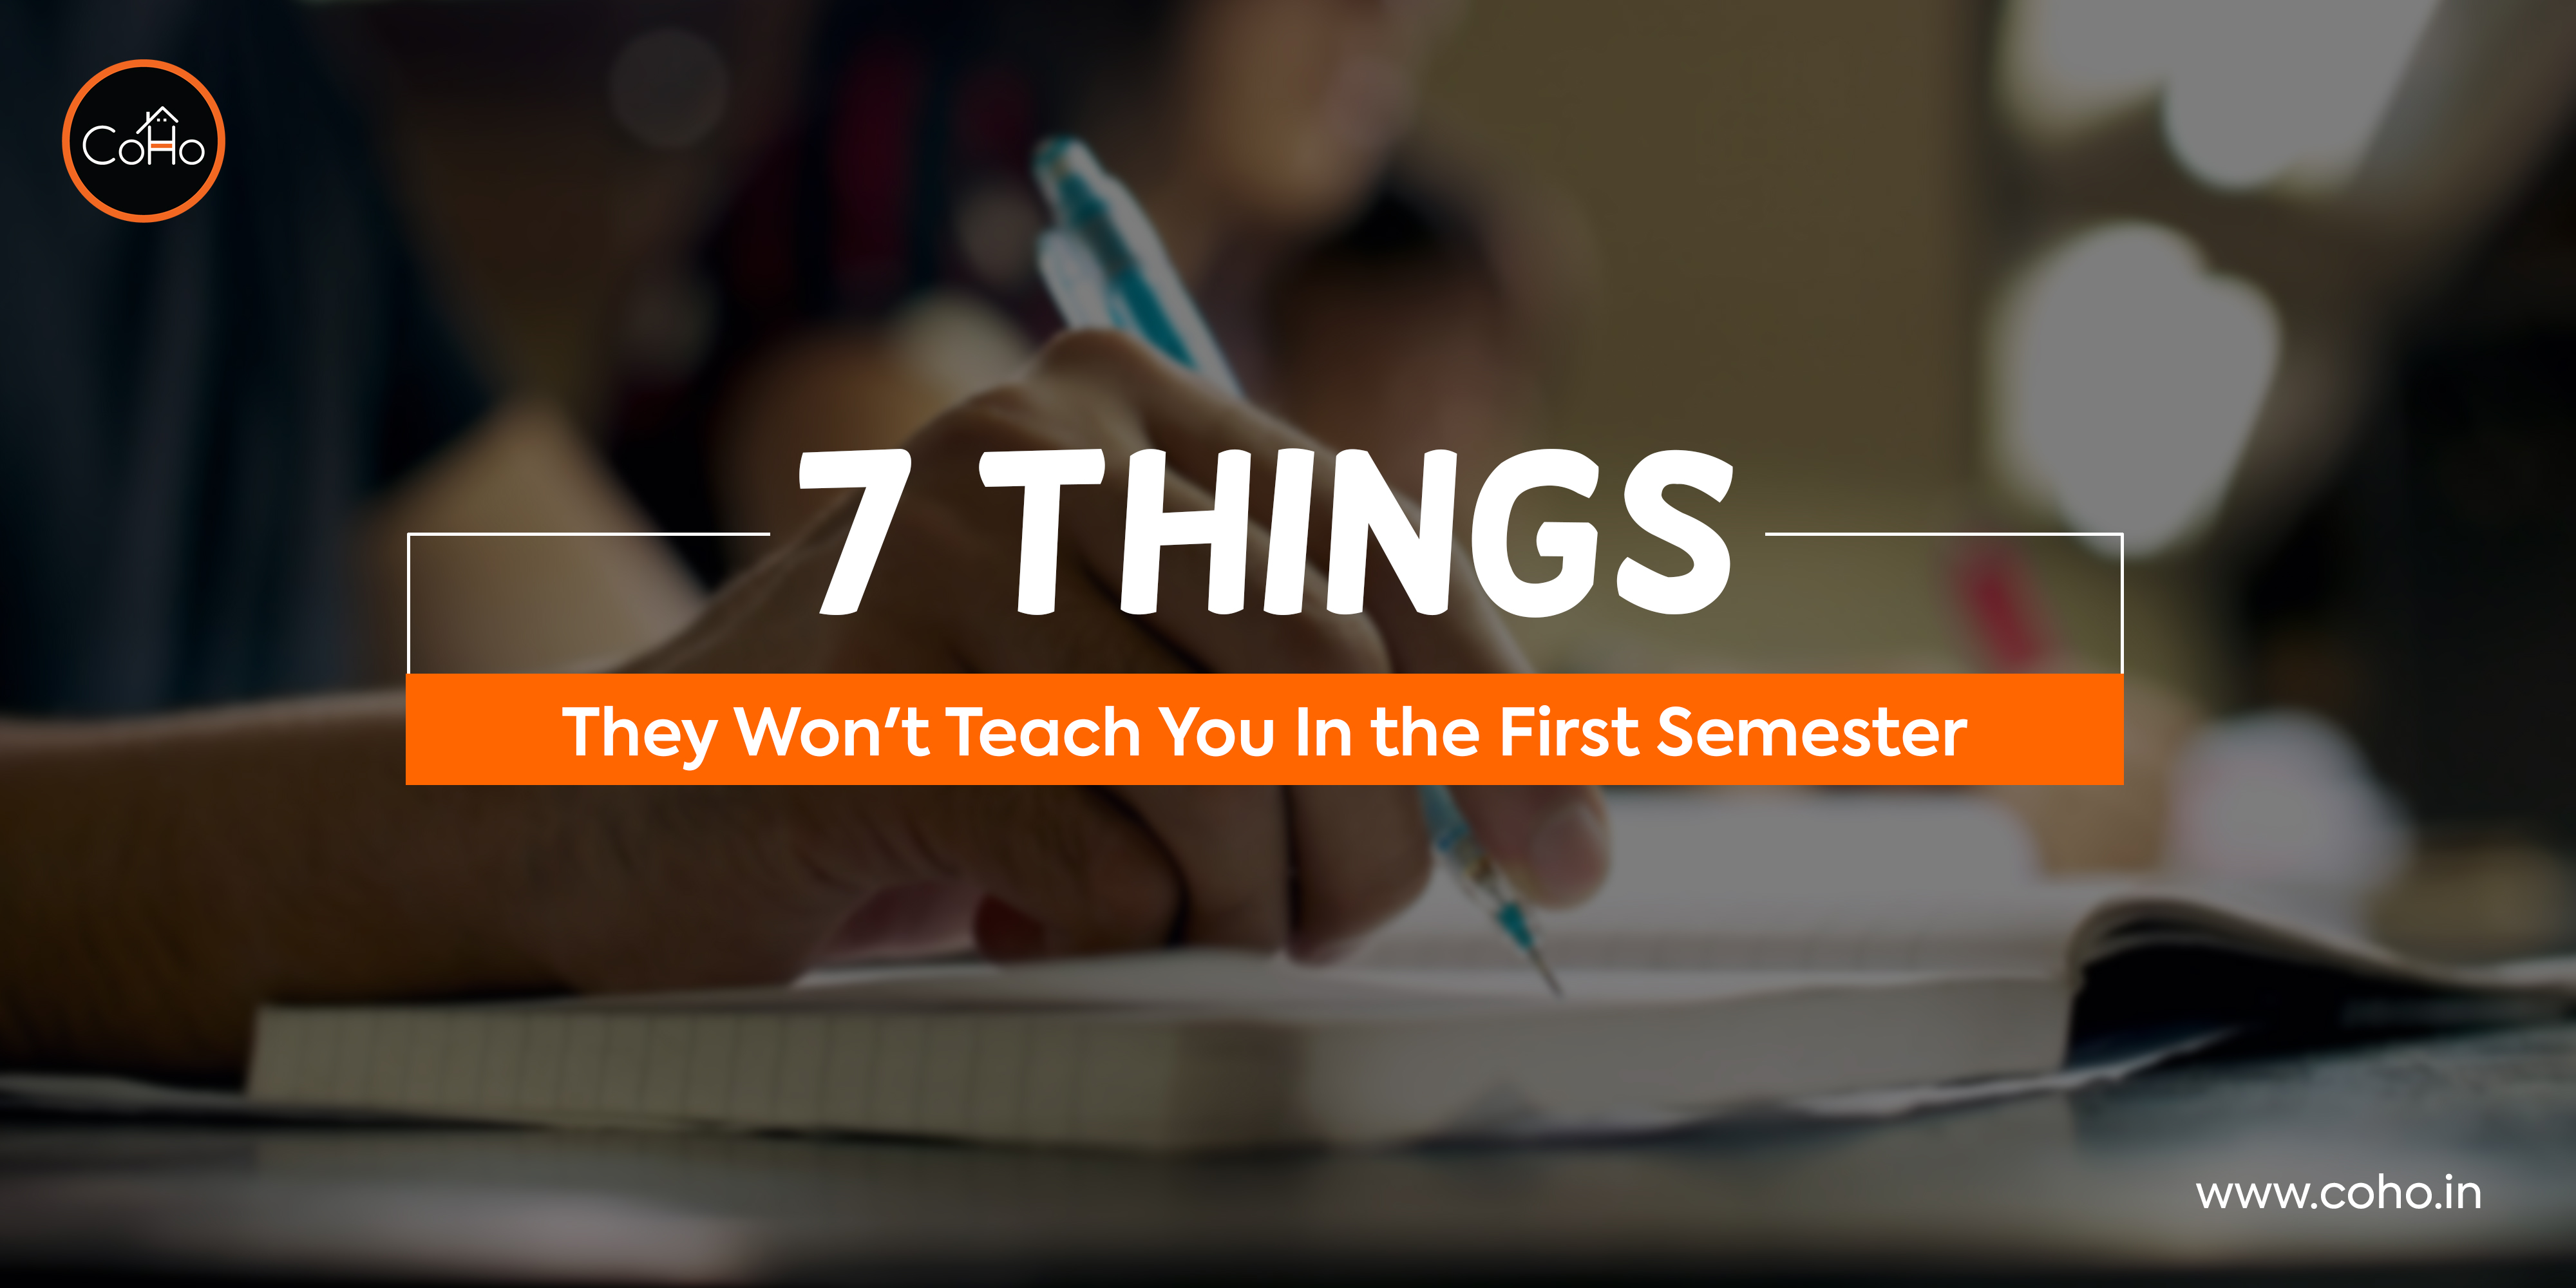 7 Things They Won't Teach You In the First Semester